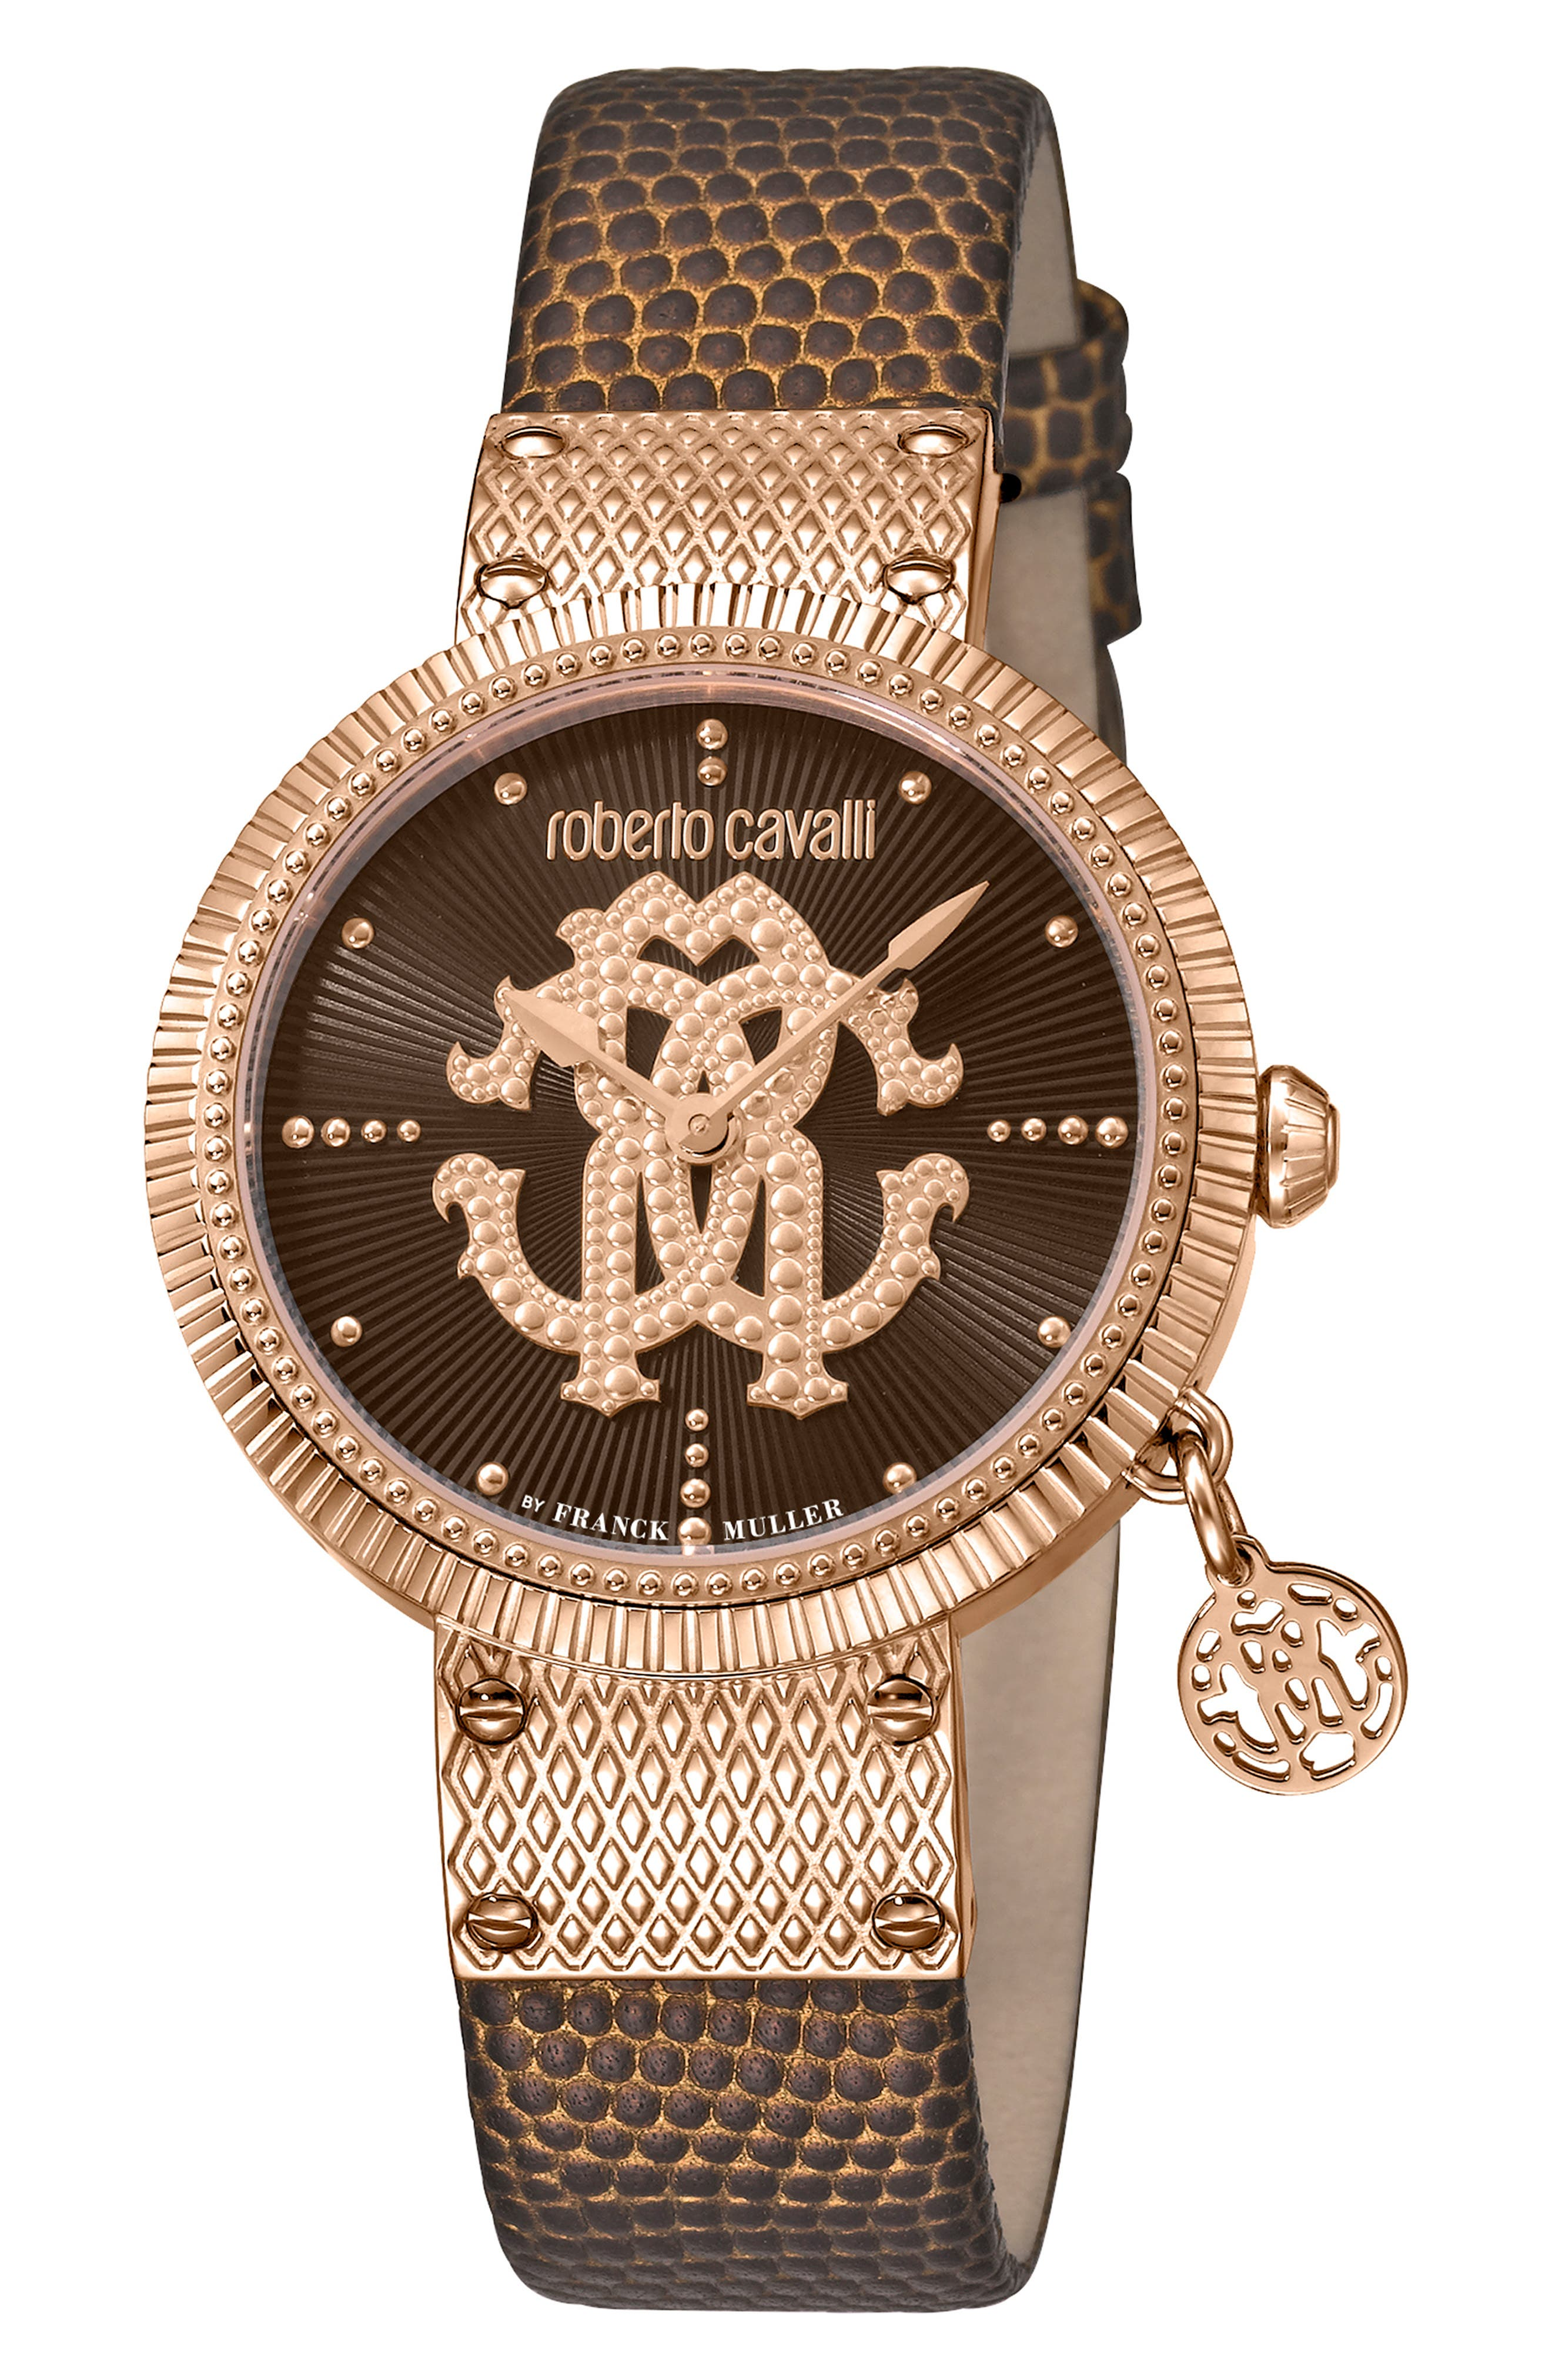 ROBERTO CAVALLI BY FRANCK MULLER Dotted Leather Strap Watch, 34Mm in Brown/ Rose Gold